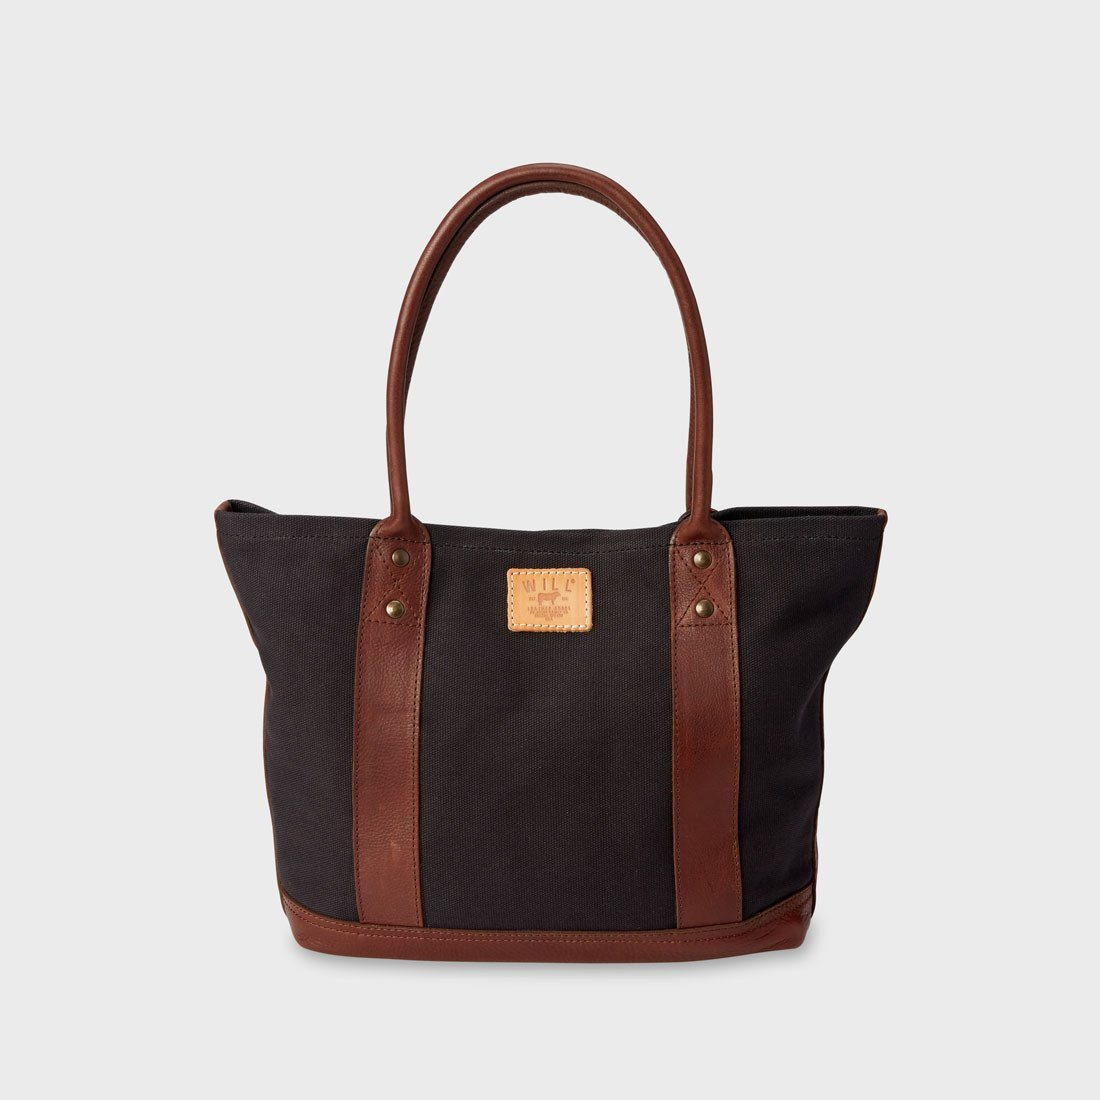 Will Leather Goods Signature Canvas & Leather Everyday Tote Black/Brown